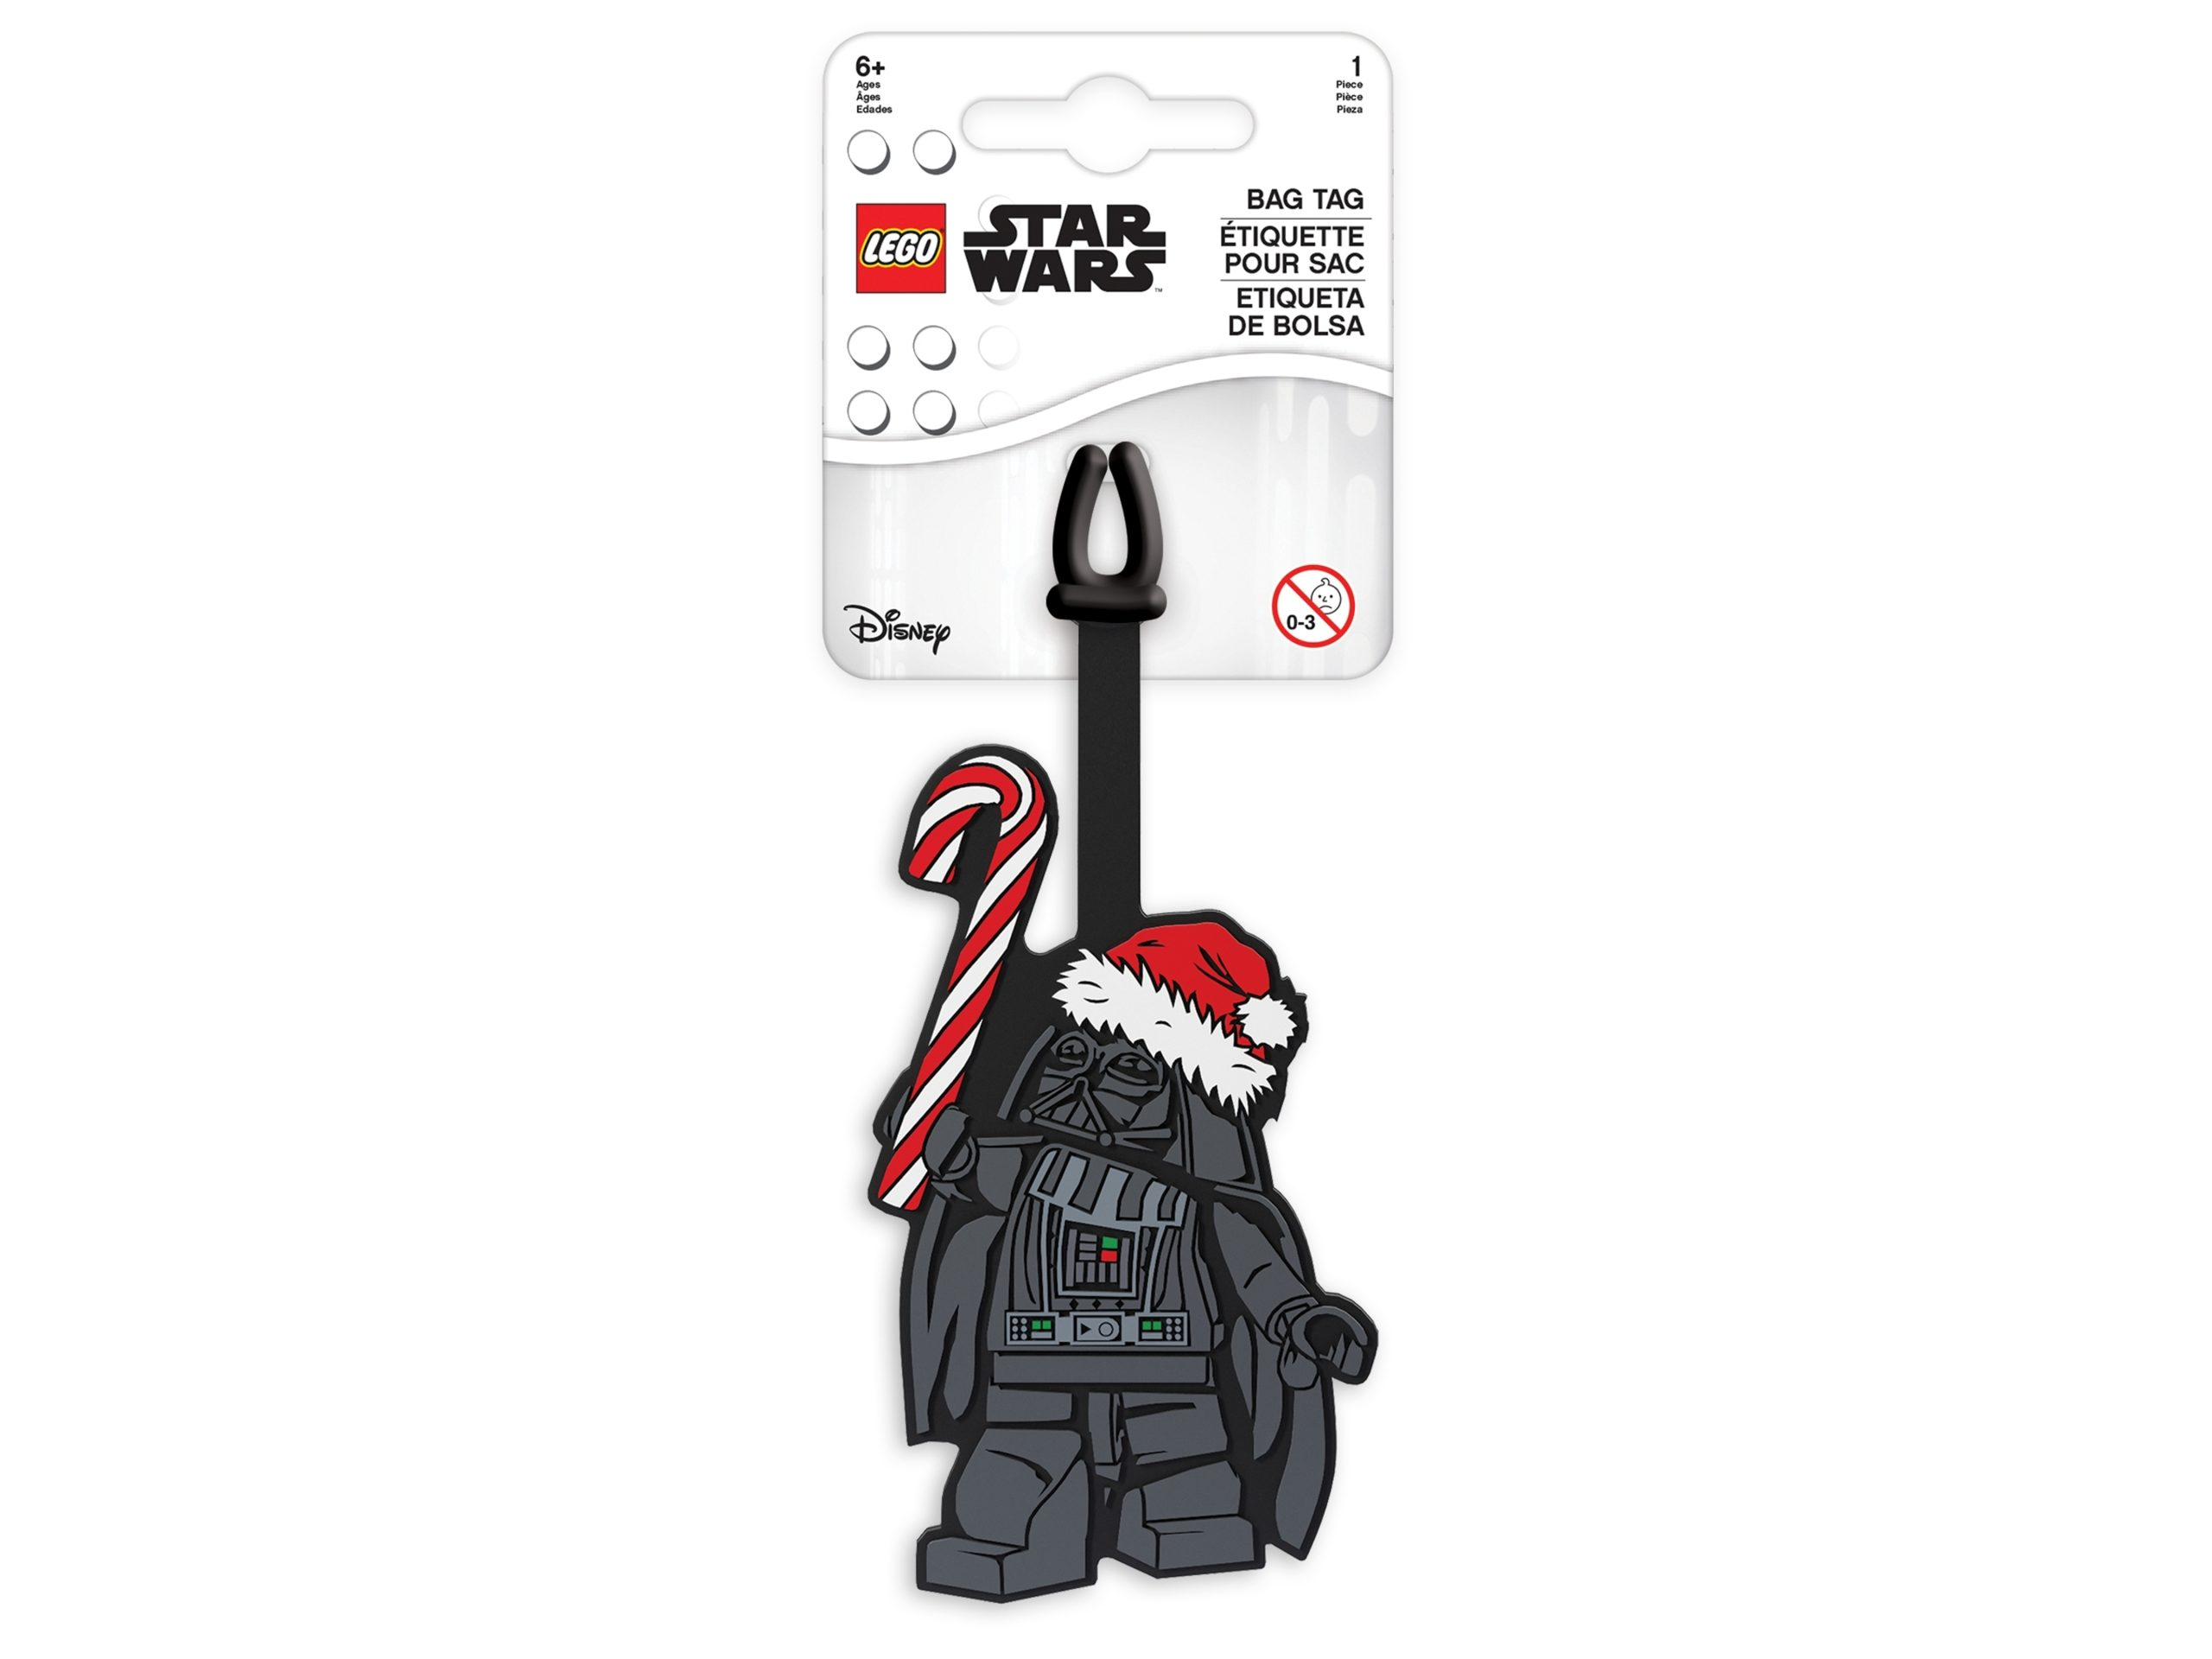 lego 5006033 holiday bag tag darth vader scaled